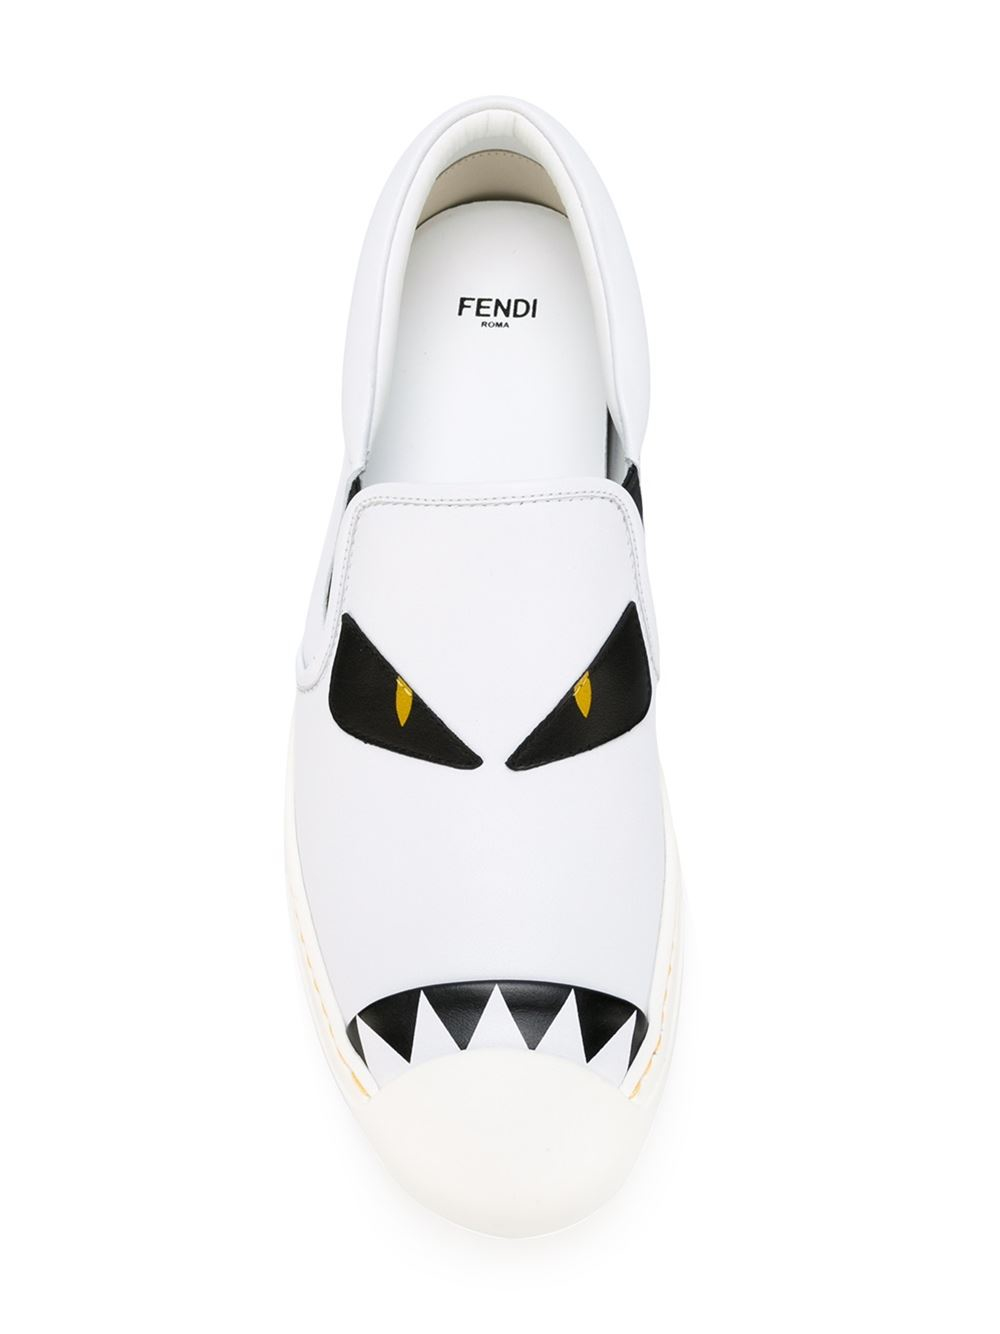 Lyst - Fendi Bag Bugs Sneakers in White 0bf7893116ac3